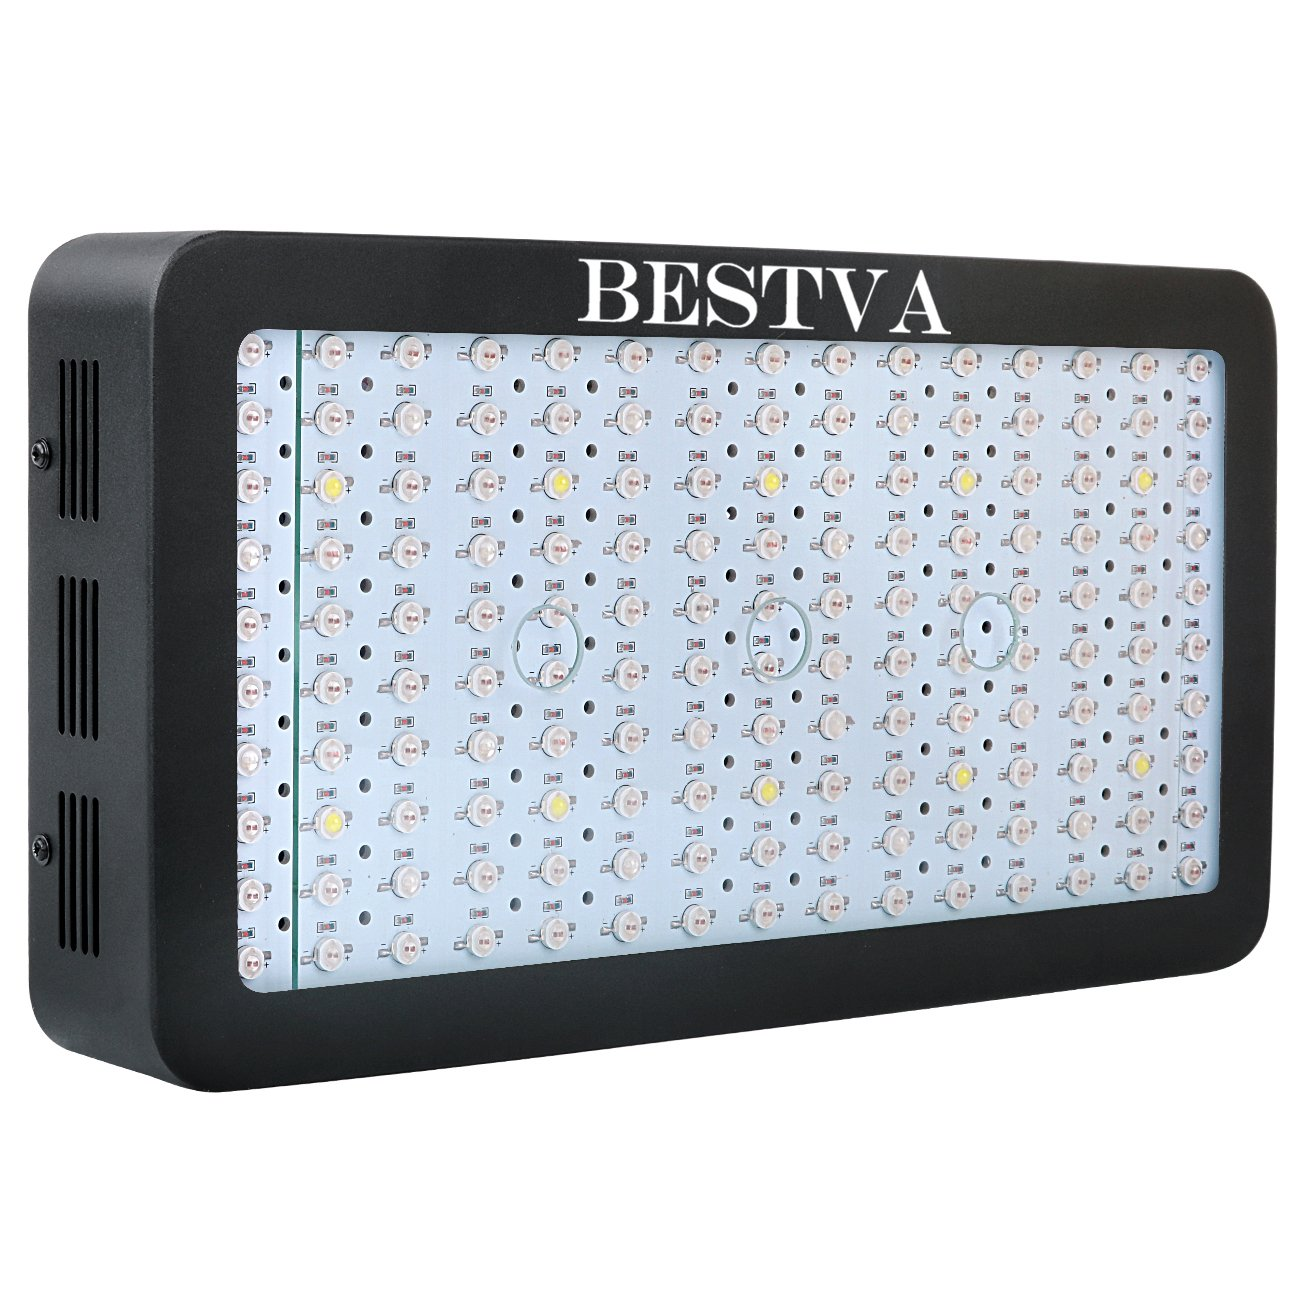 BESTVA 1500W Double Chips LED Grow Light Full Spectrum Grow Lamp for Greenhouse Hydroponic Indoor Plants Veg and Flower by BESTVA